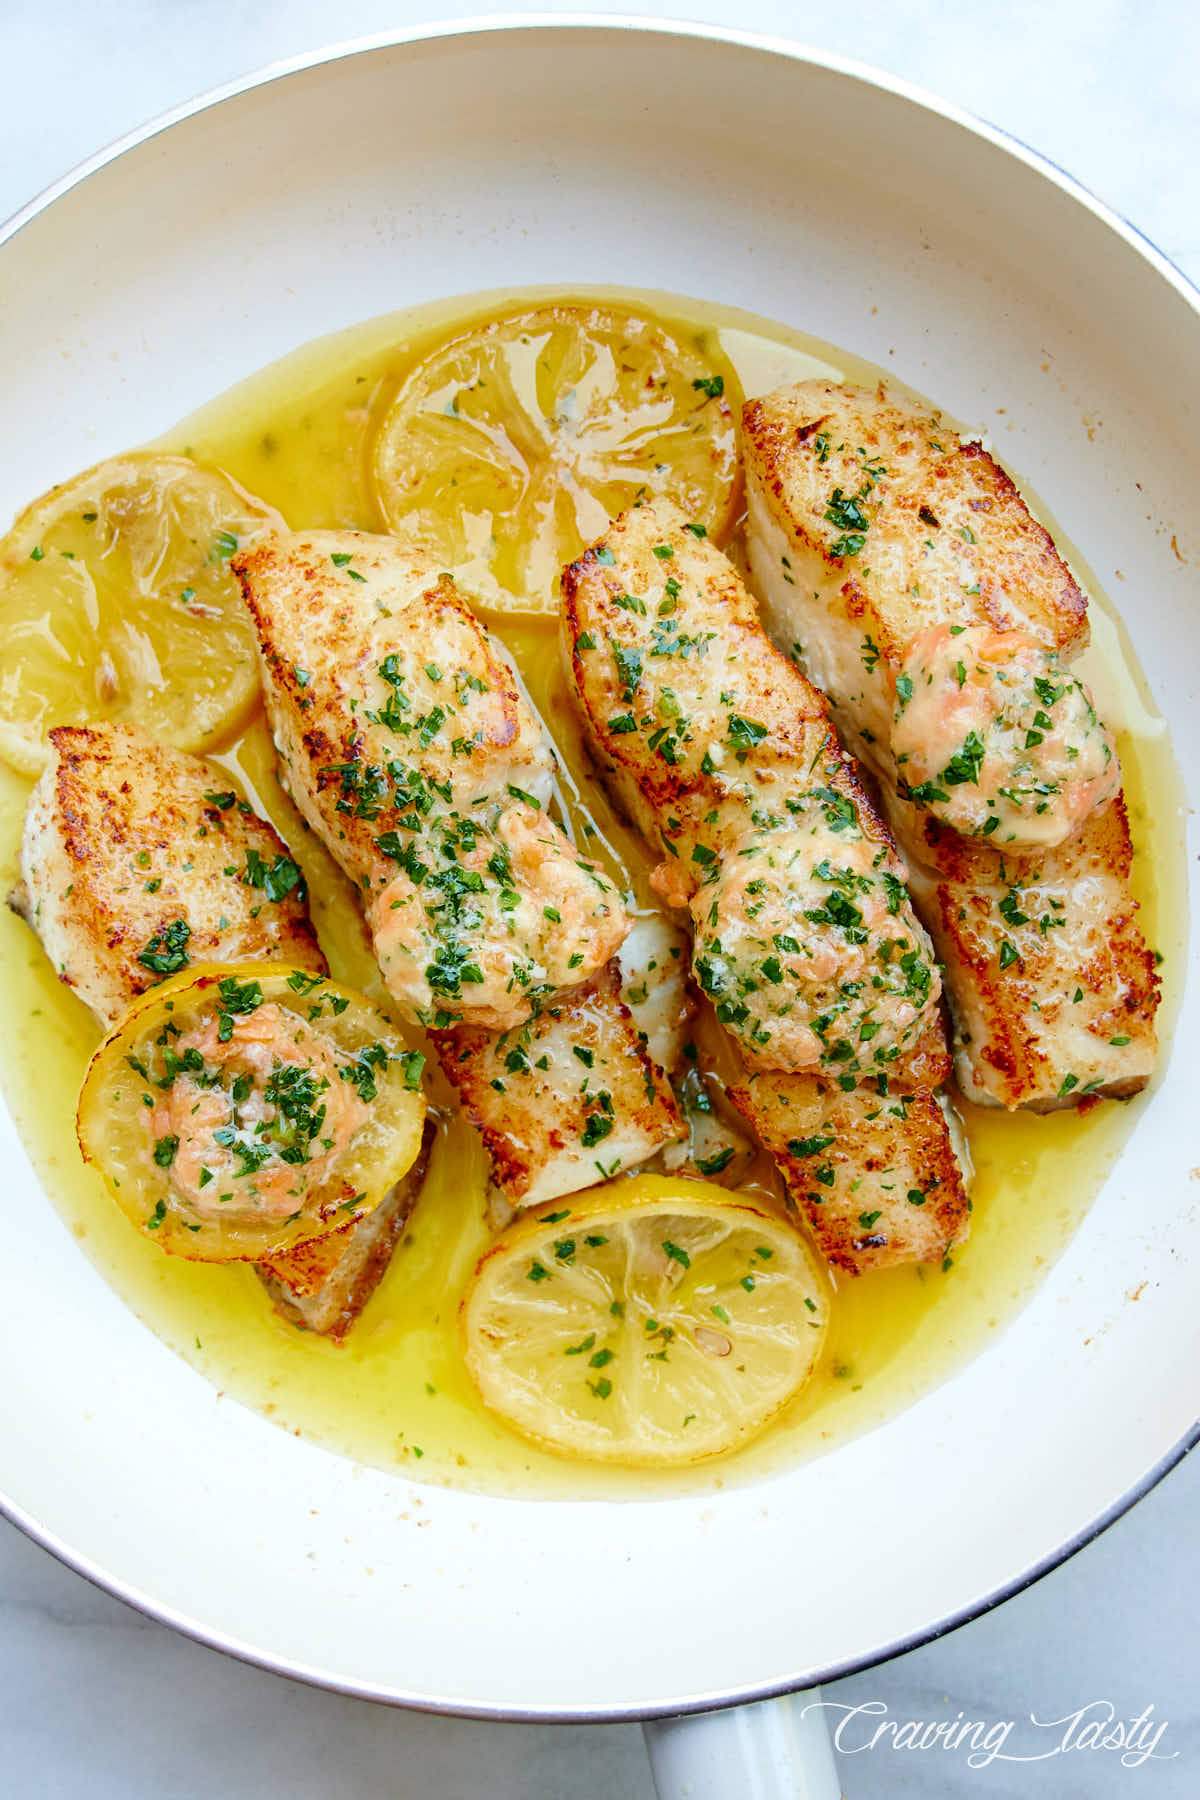 Seared halibut pieces in oil in a white pan, with lemon slices .